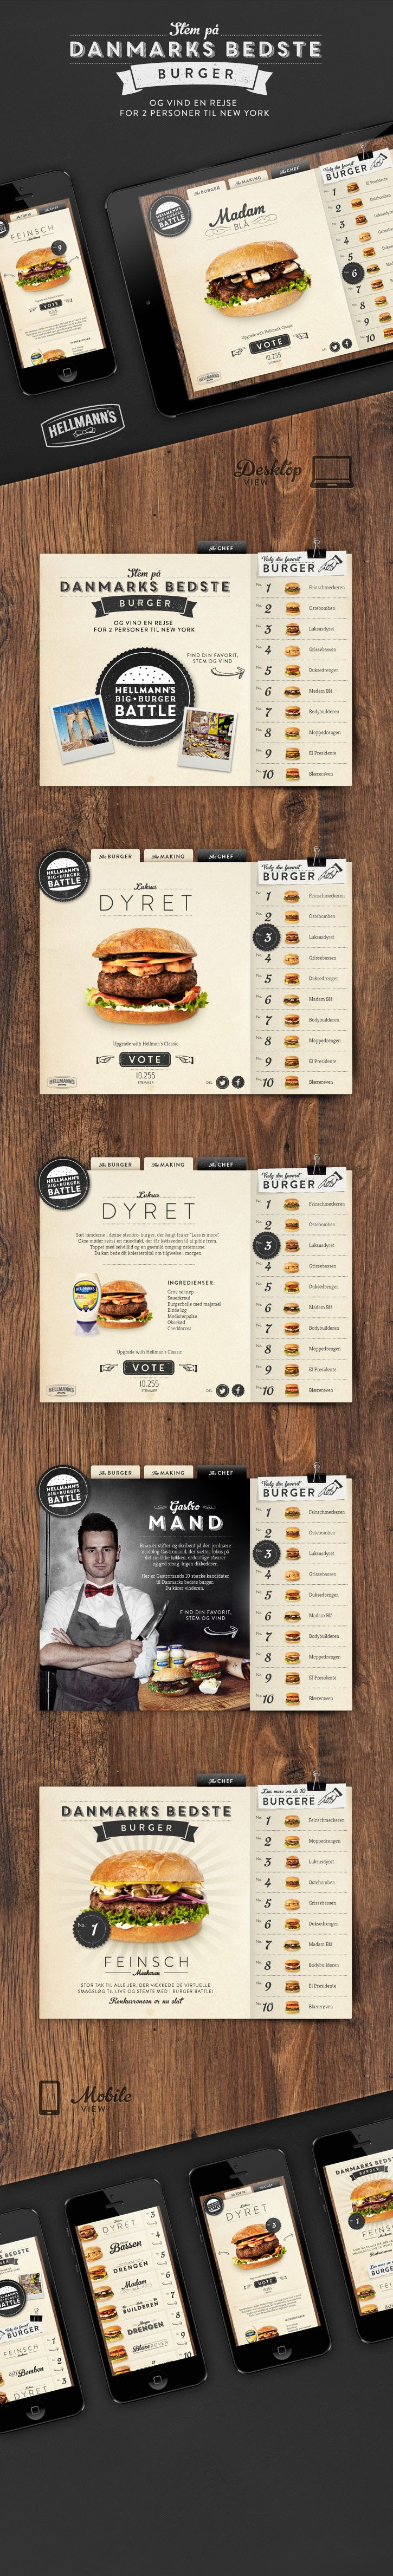 Burger #ui #app #mobile #web #design